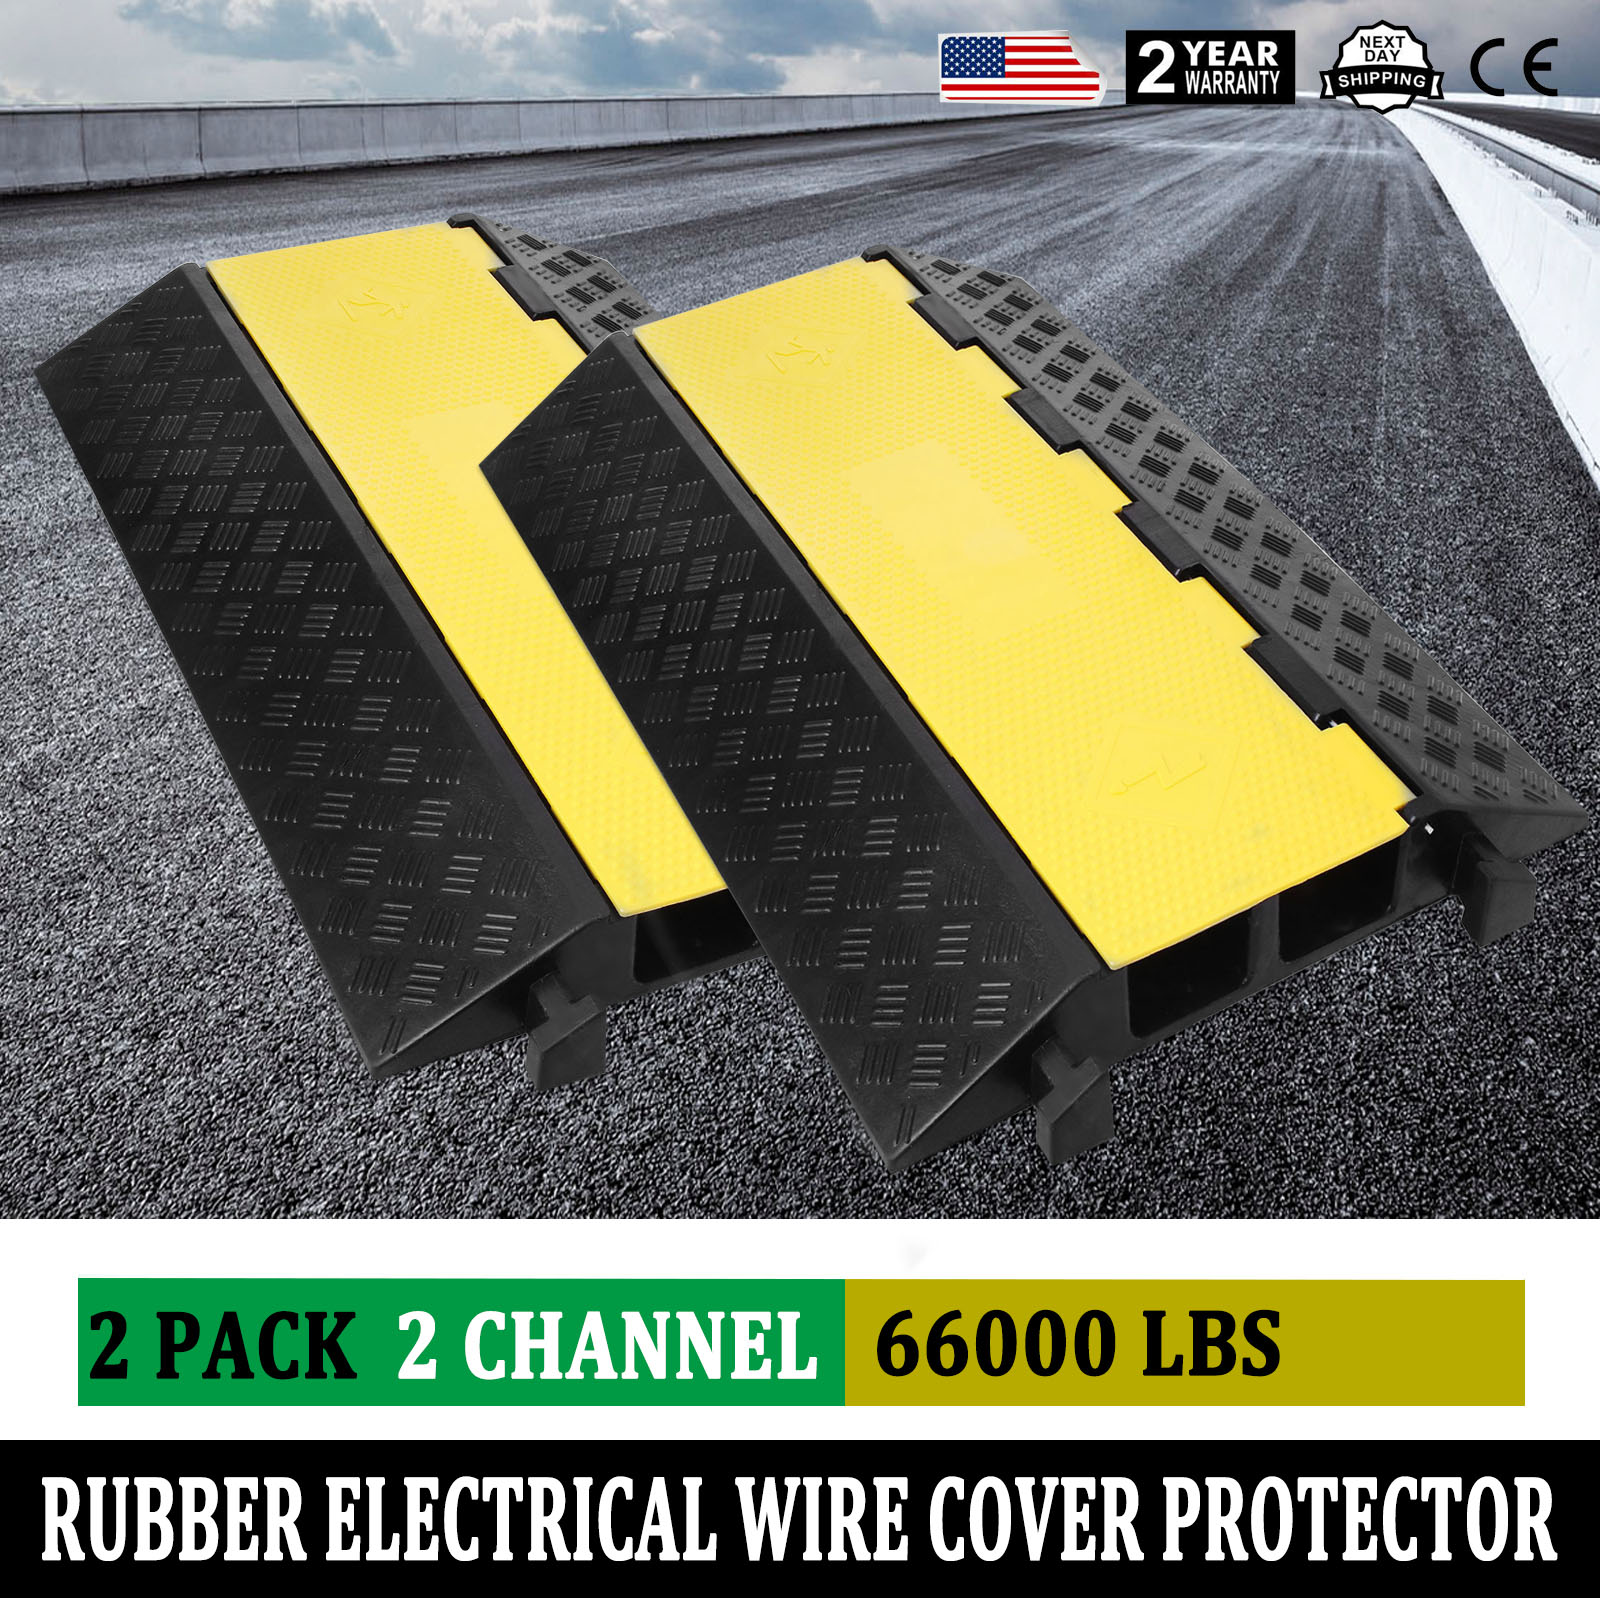 Unique Electrical Wire Protector Gift - Electrical System Block ...